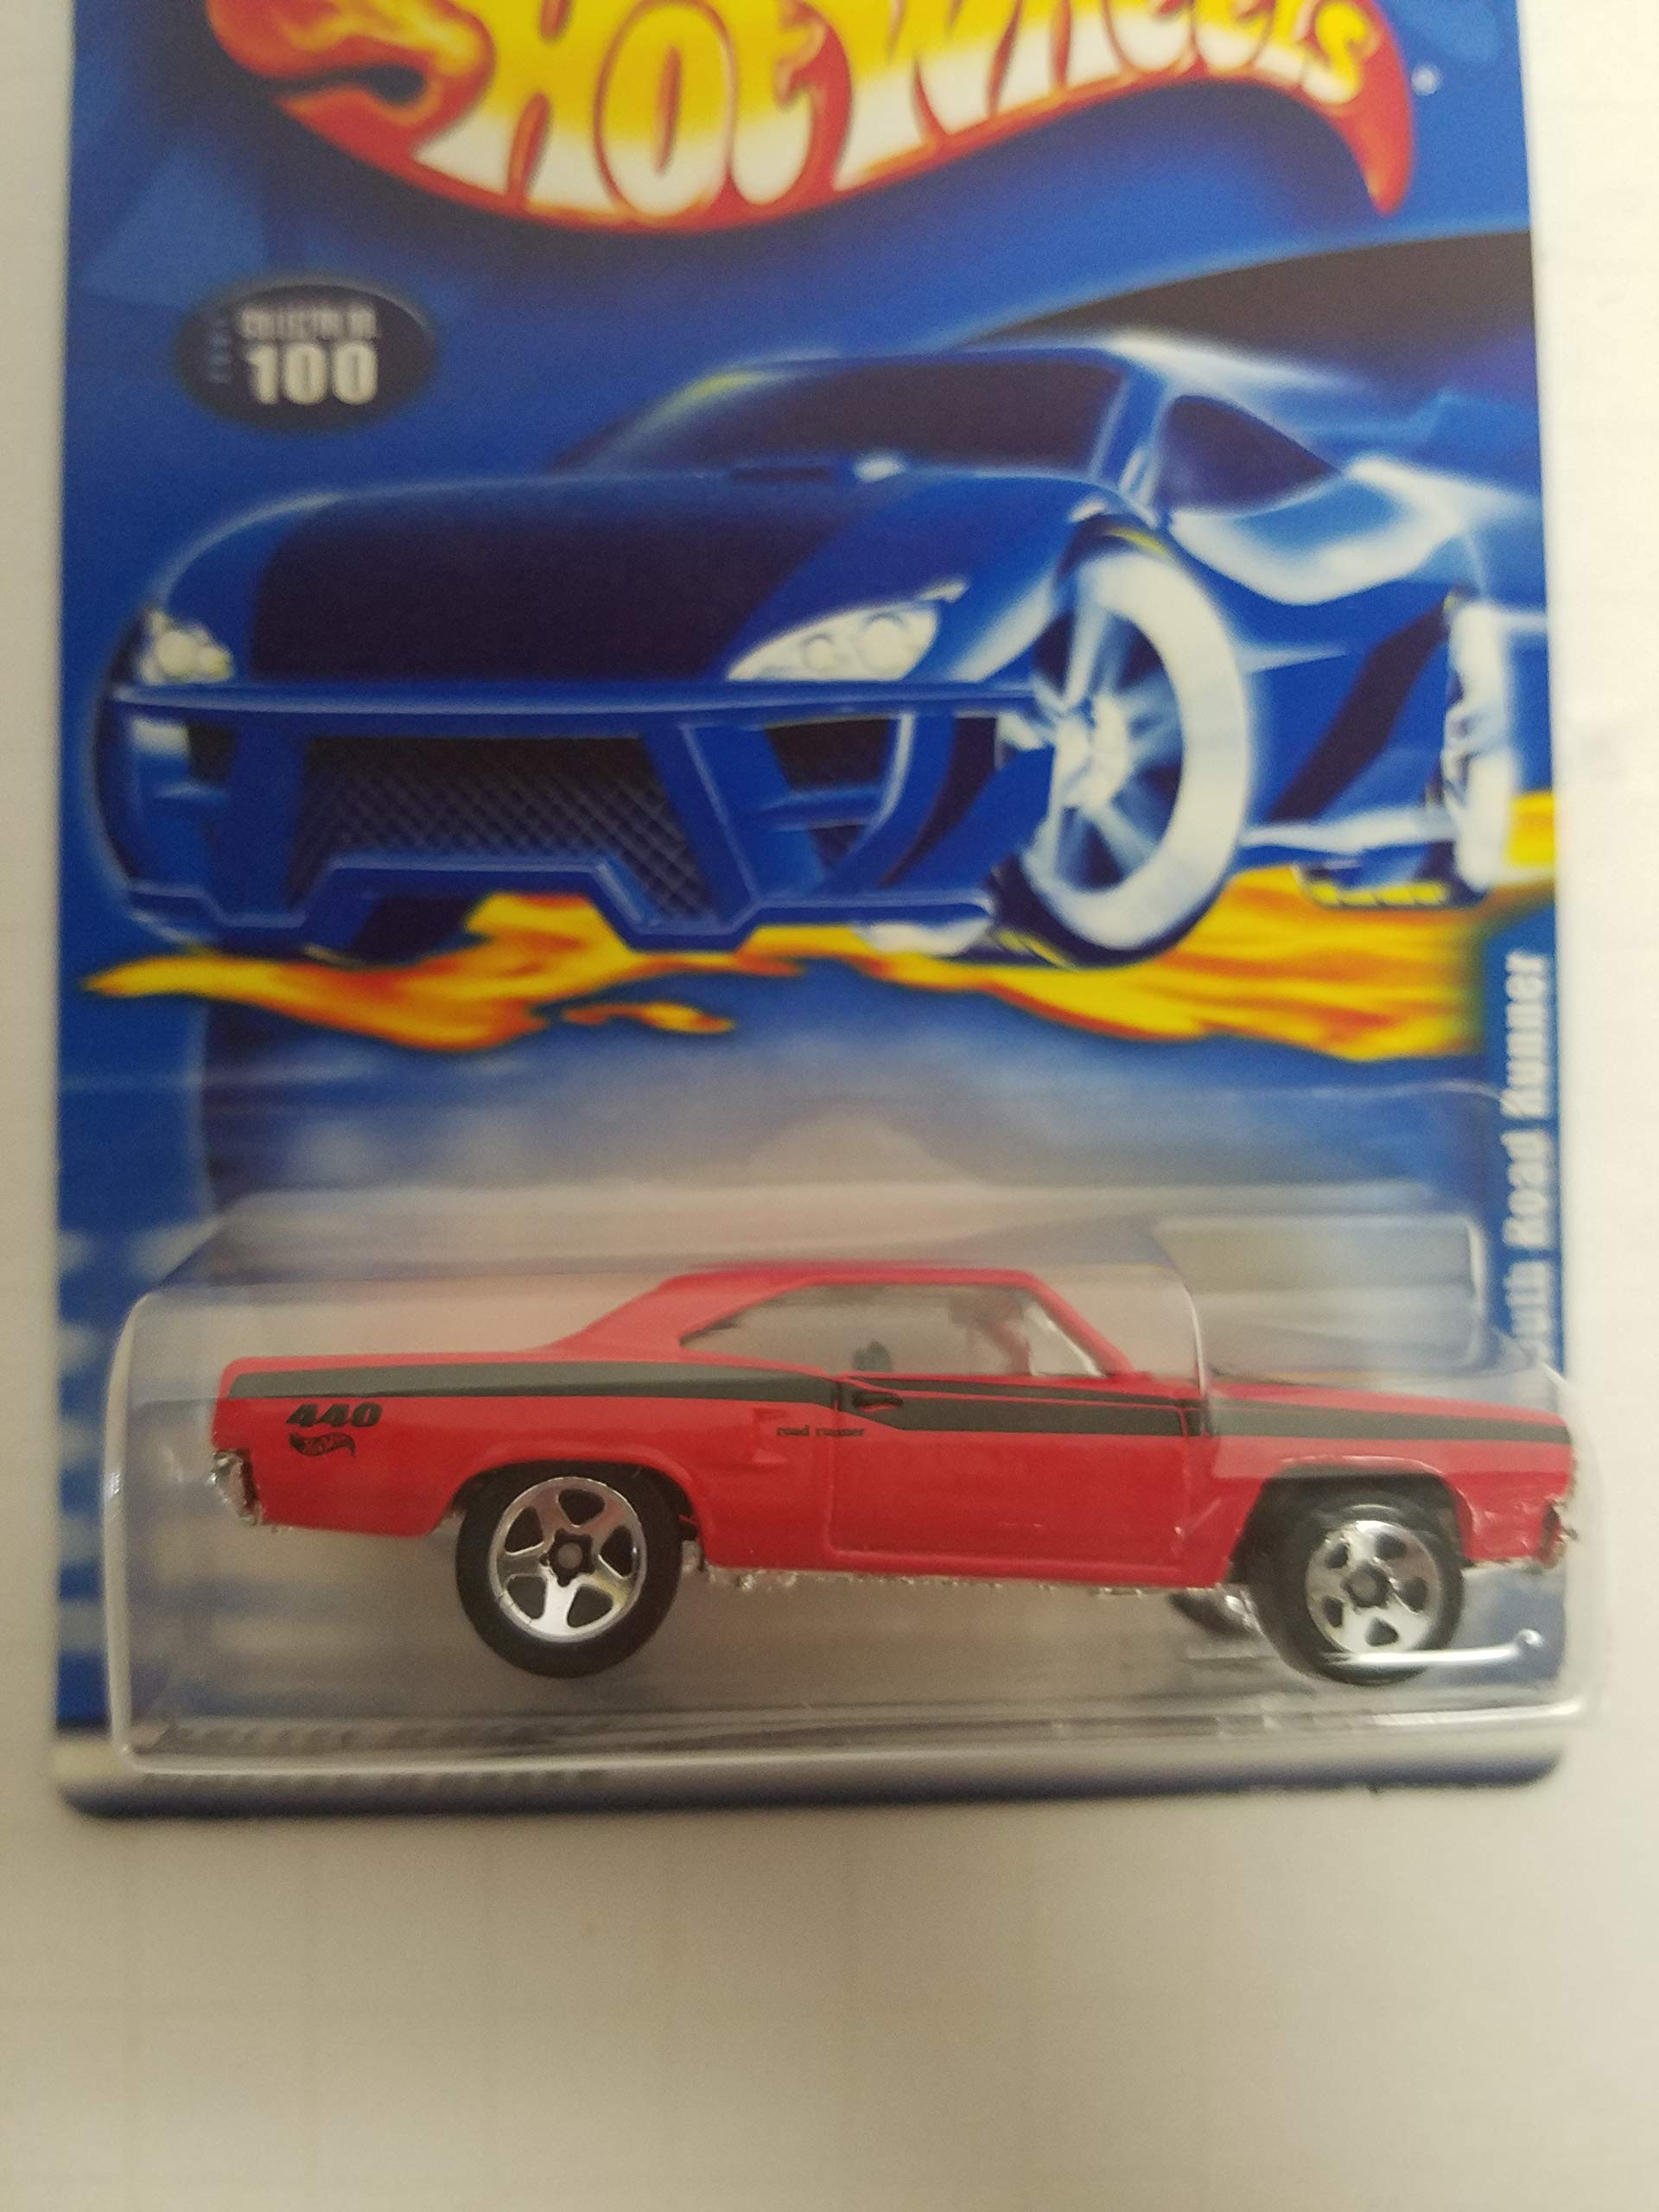 1970 Plymouth Road Runner Hot Wheels 2001 diecast 1/64 scale car No. 100